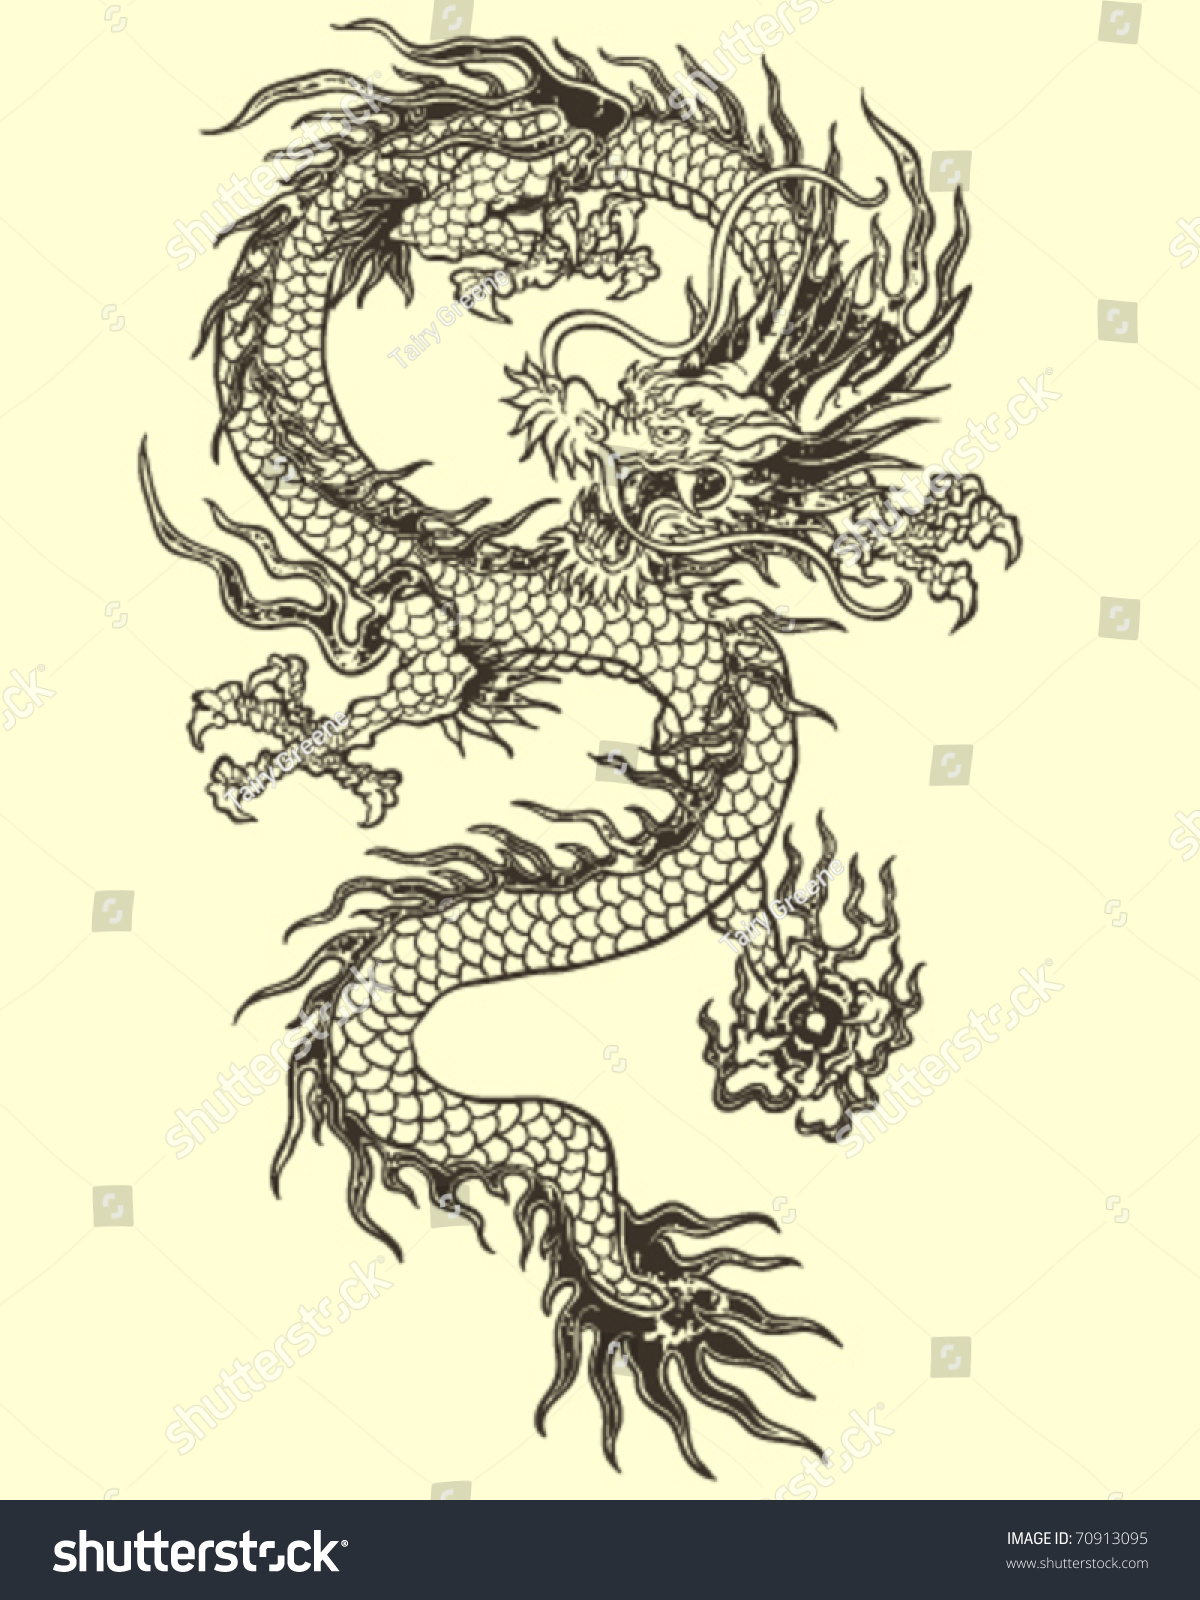 Illustration Tattoos: Dragon Tattoo Illustration Stock Vector 70913095